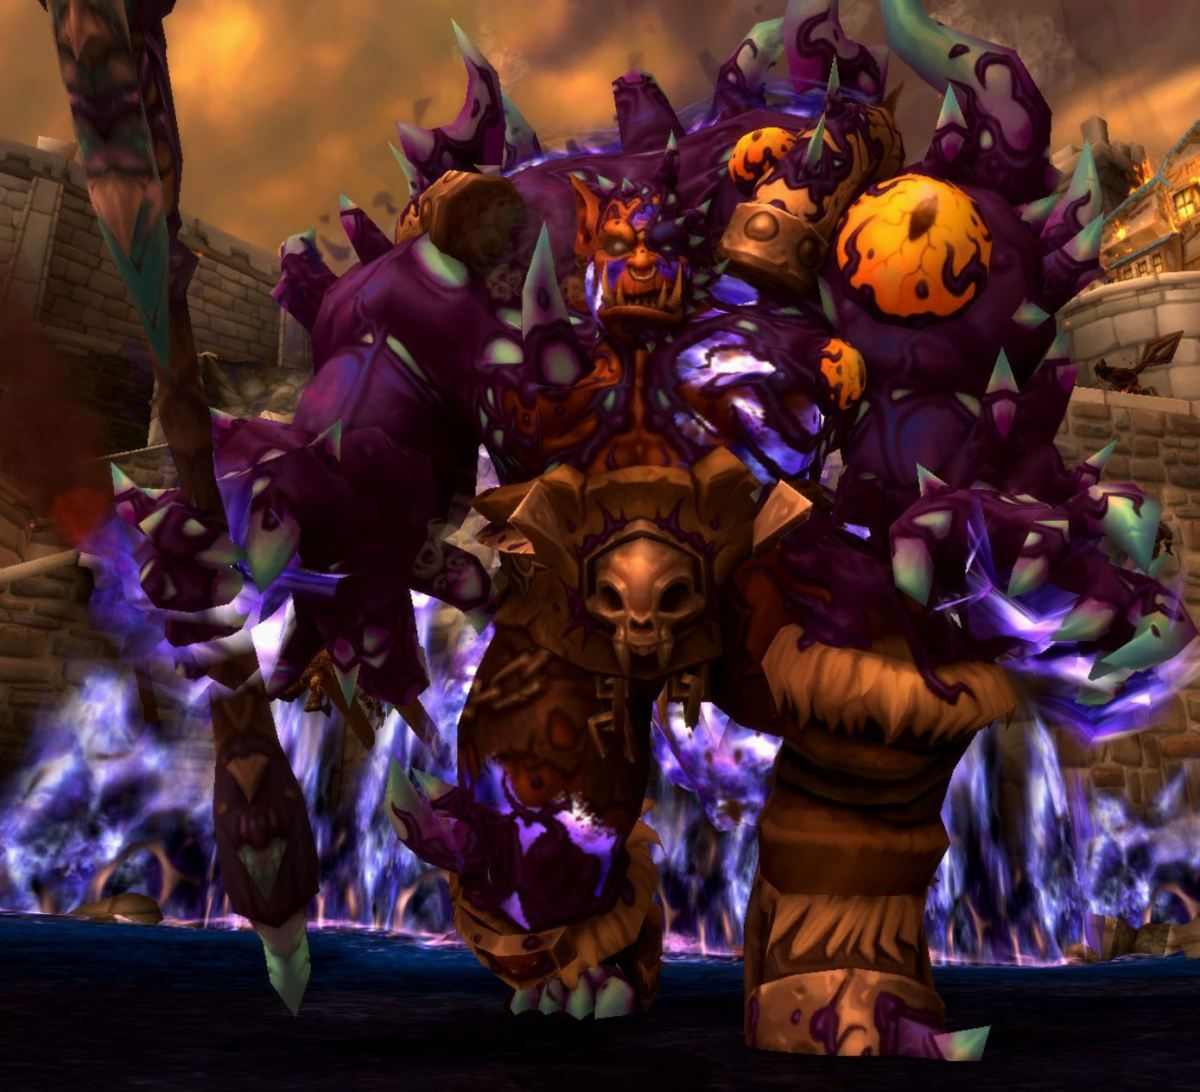 Garrosh - Owner of OG Corrupted Gear 1